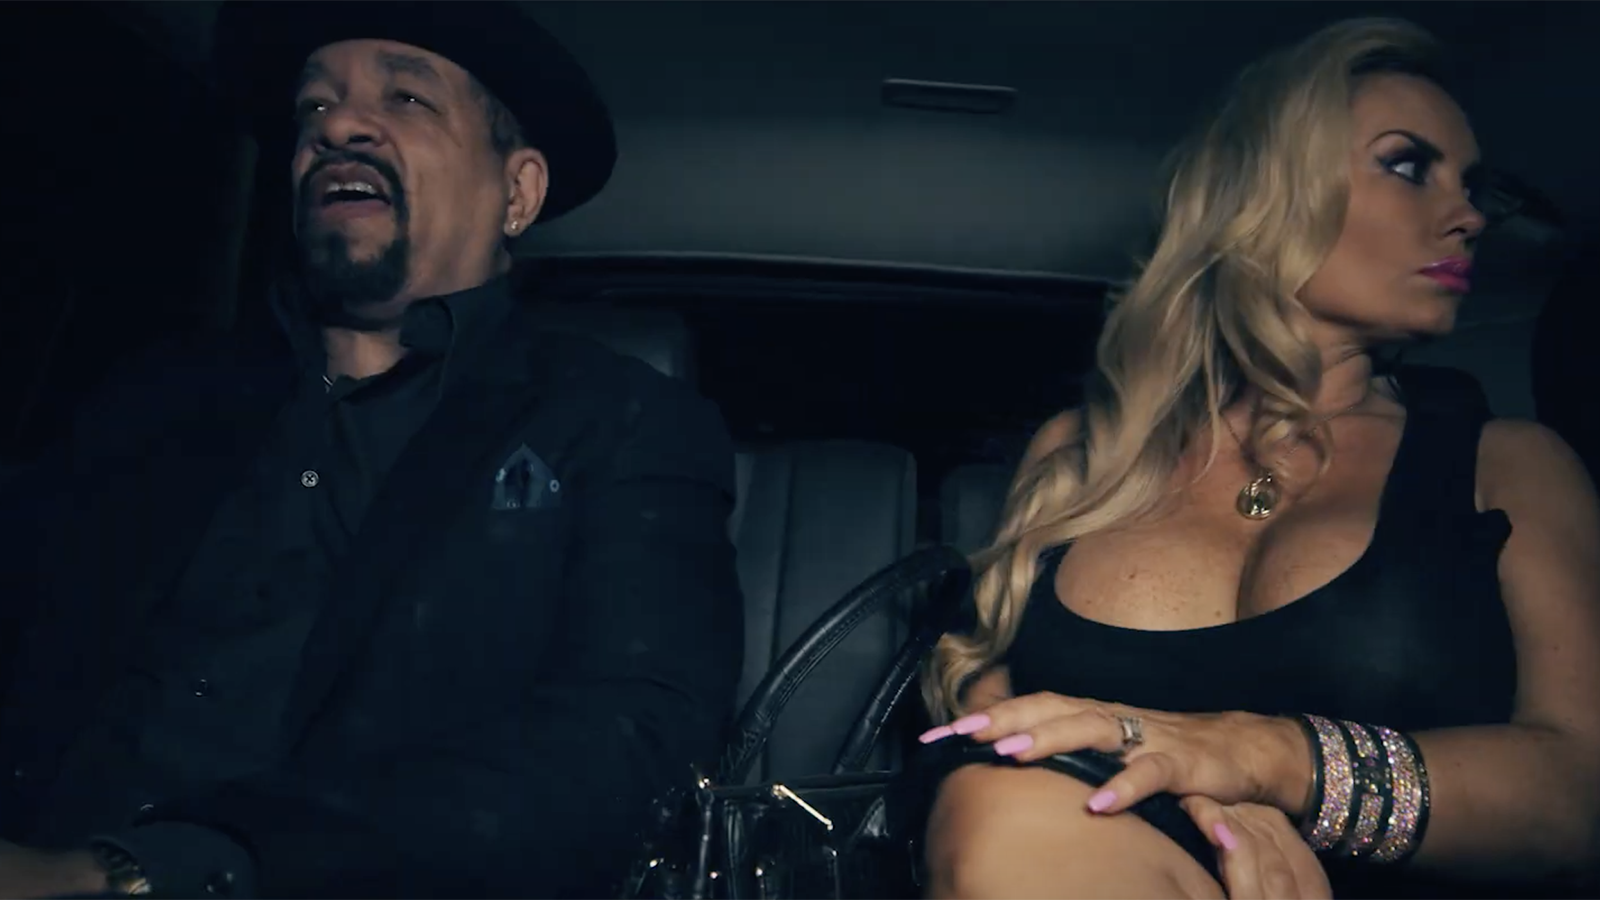 """See Ice-T and Coco Star in Rapper's New """"I'm Too Old for This Dumb Shit"""" Video"""